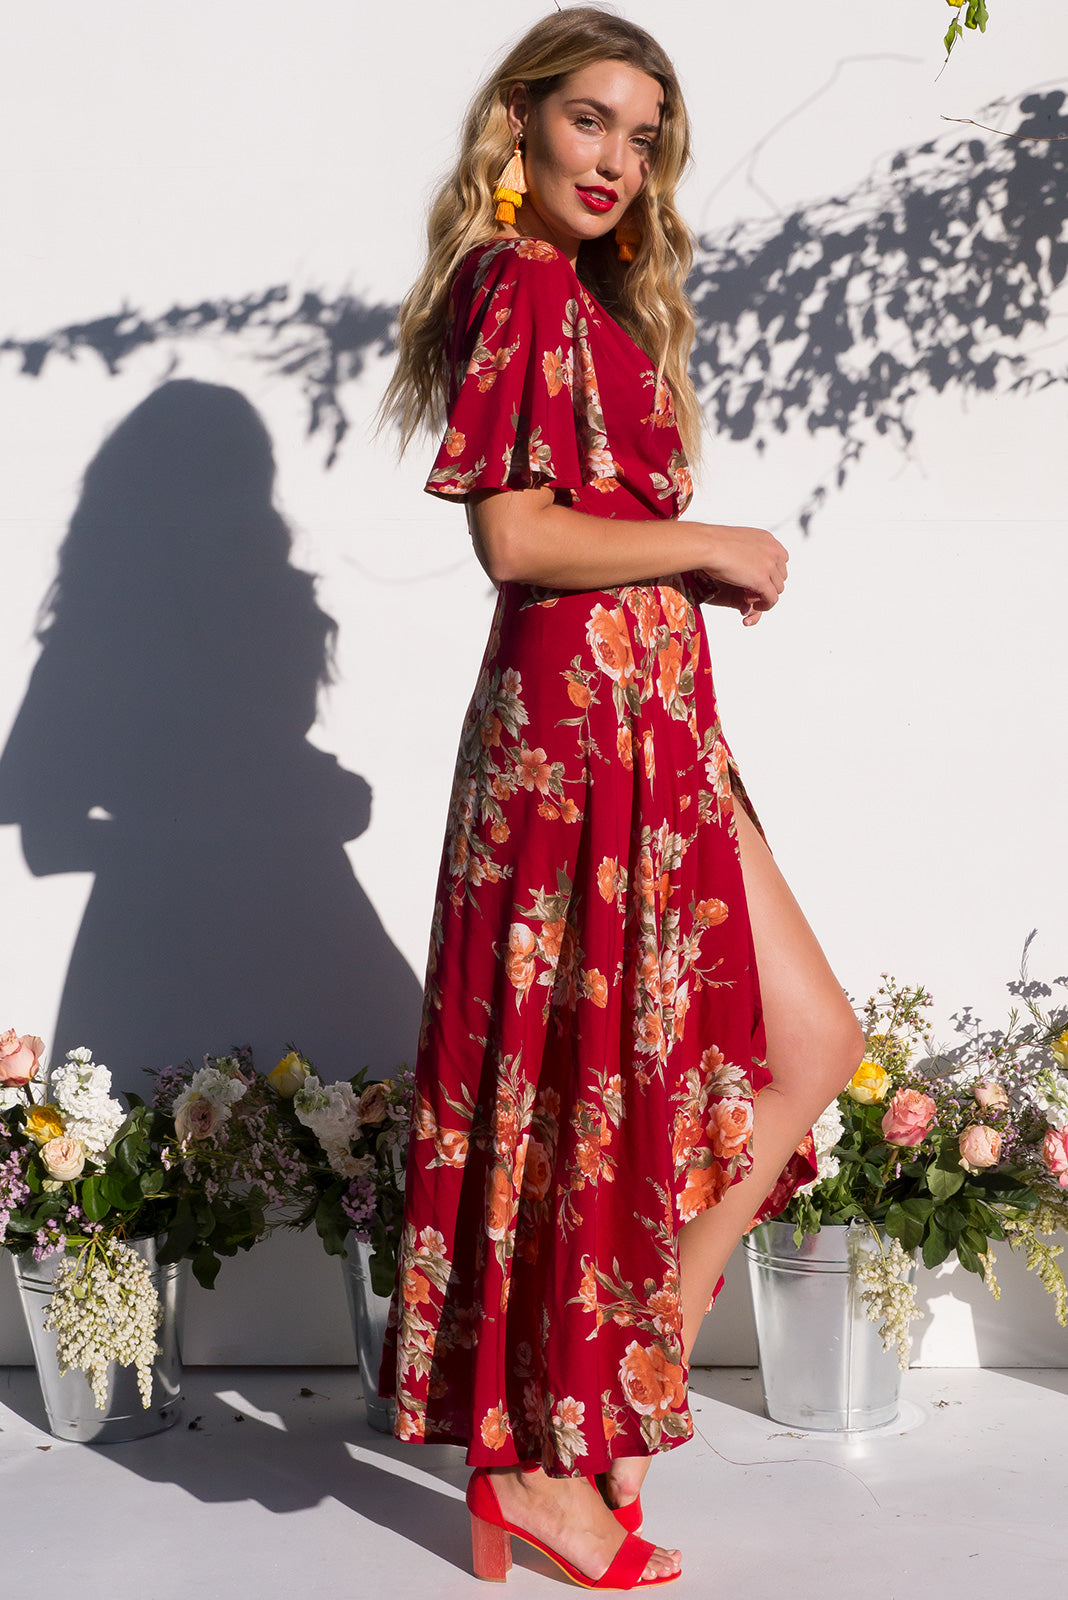 Petal Wine and Roses Maxi Wrap dress with flutter sleeves and a vibrant red with peachy pink roses print